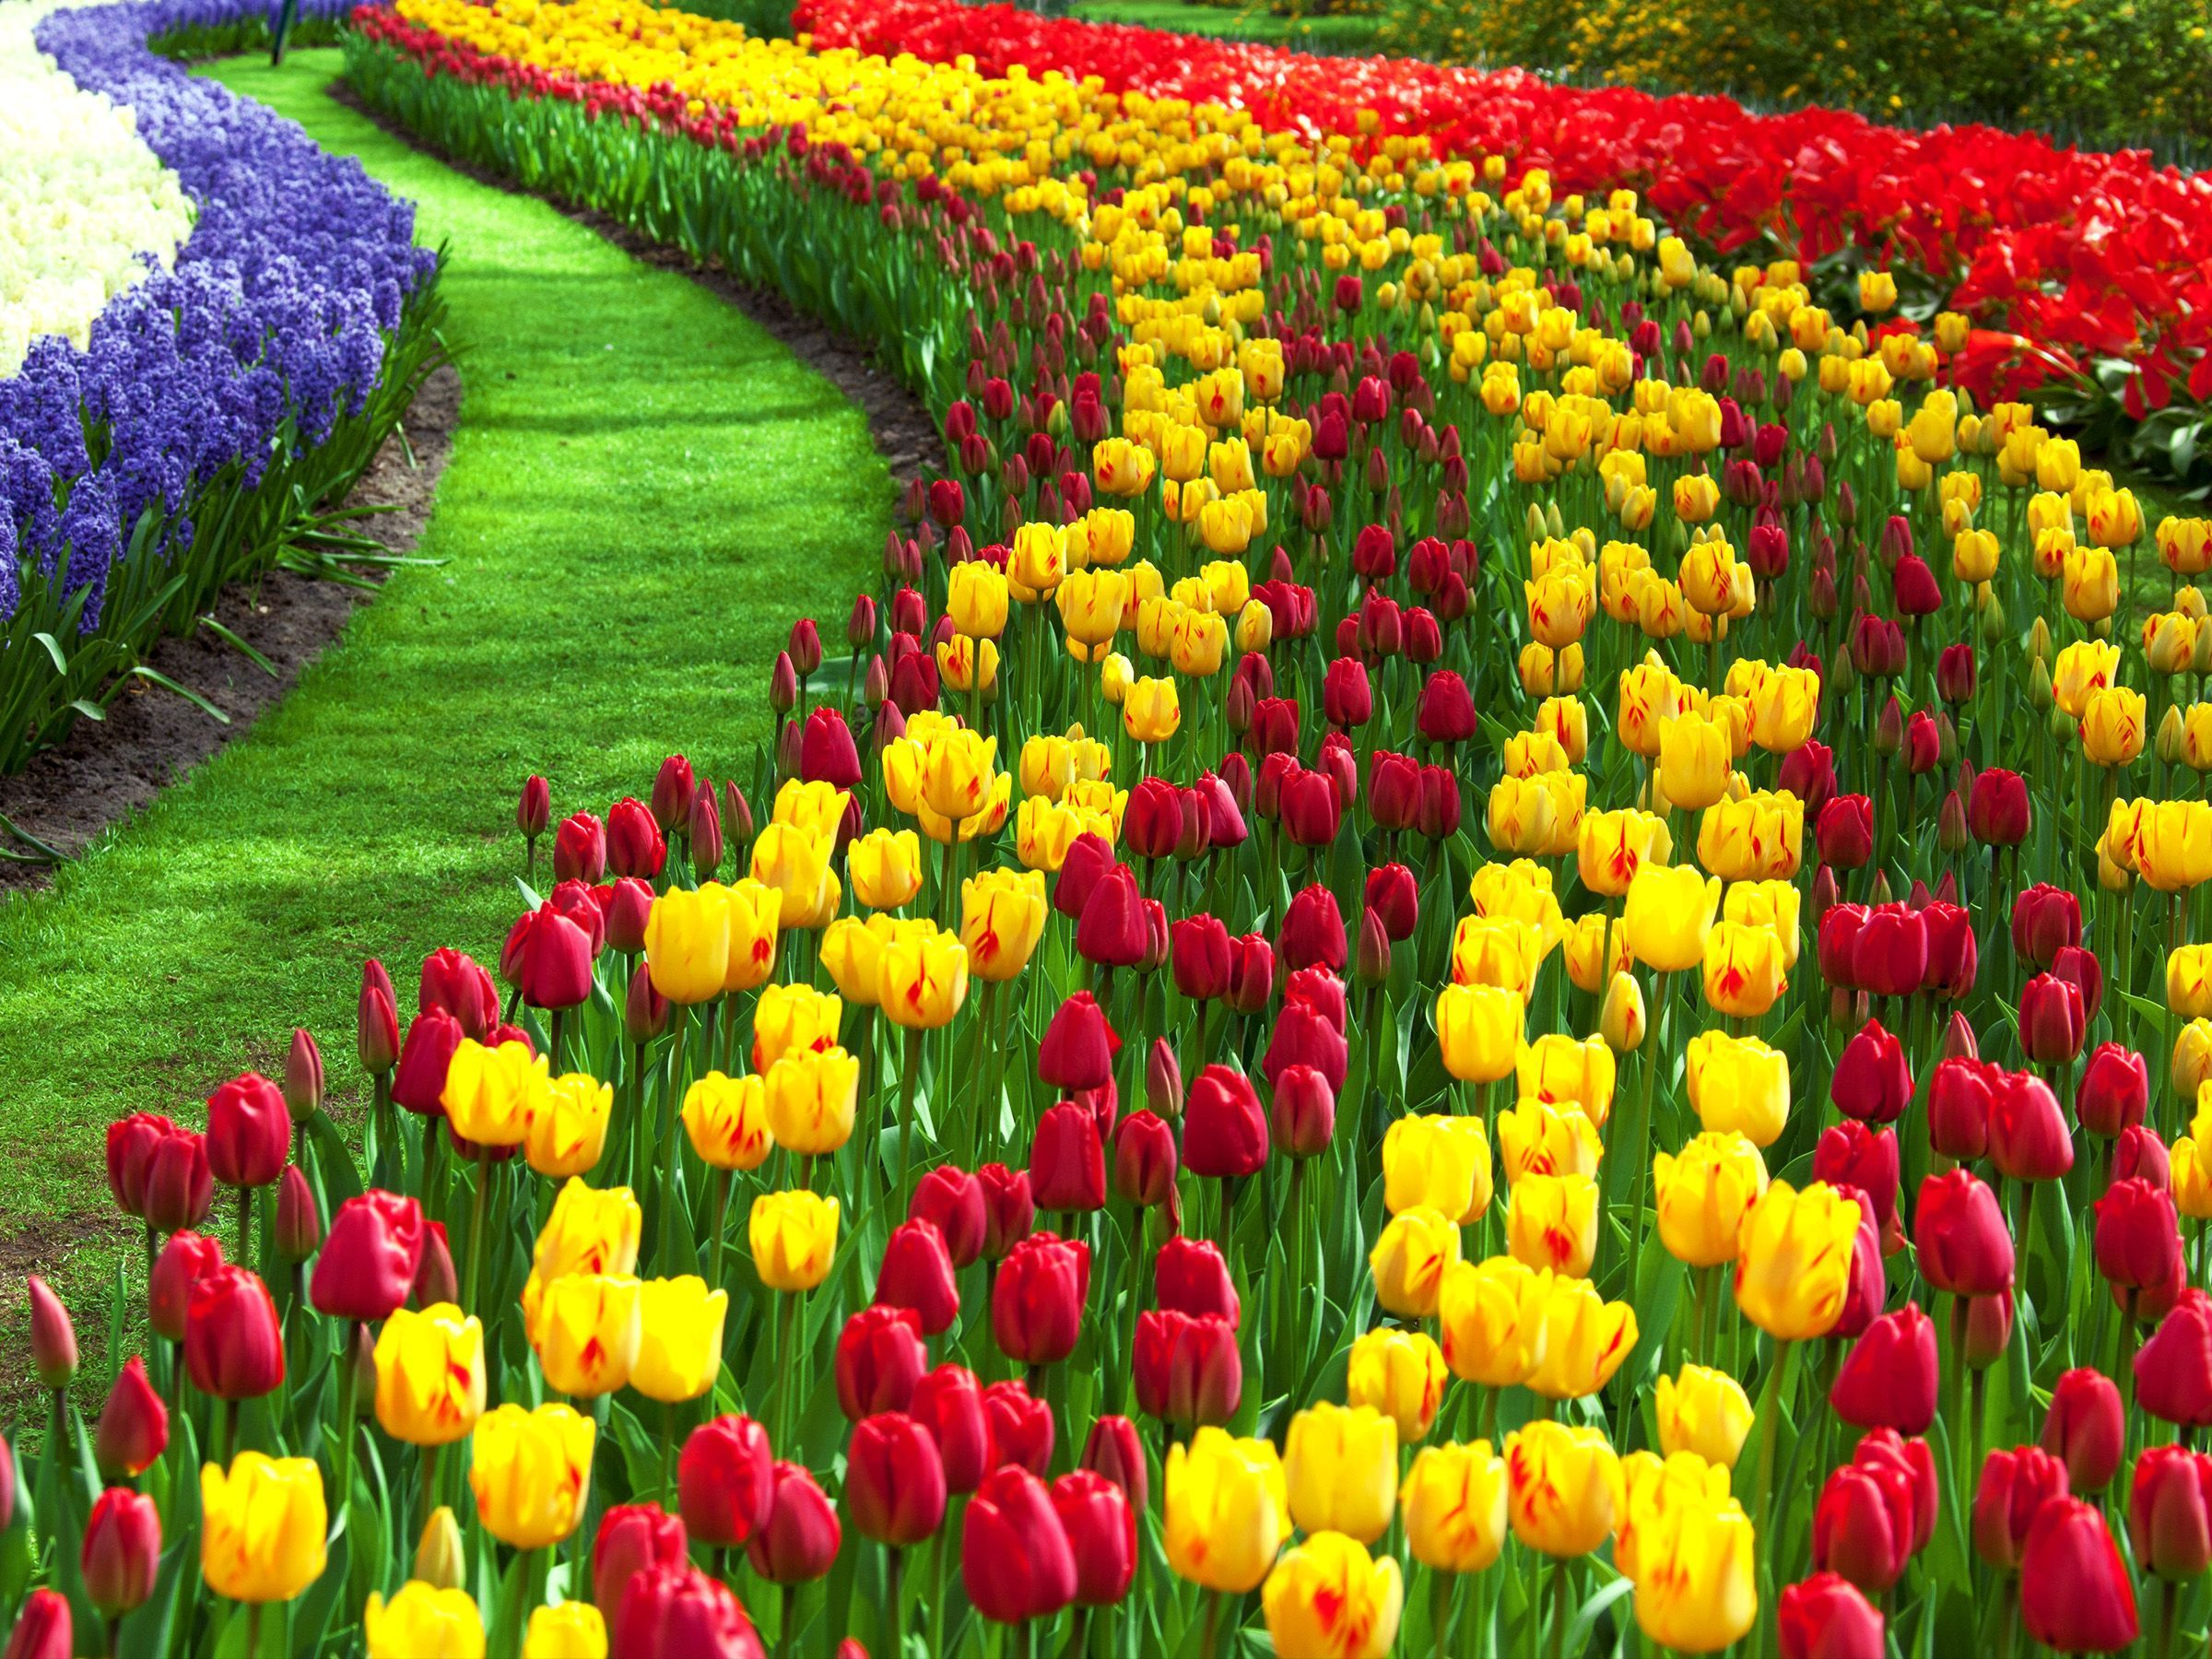 flower garden id 514071932 wallpaper for free cool hqfx backgrounds 2400x1800 082 mb